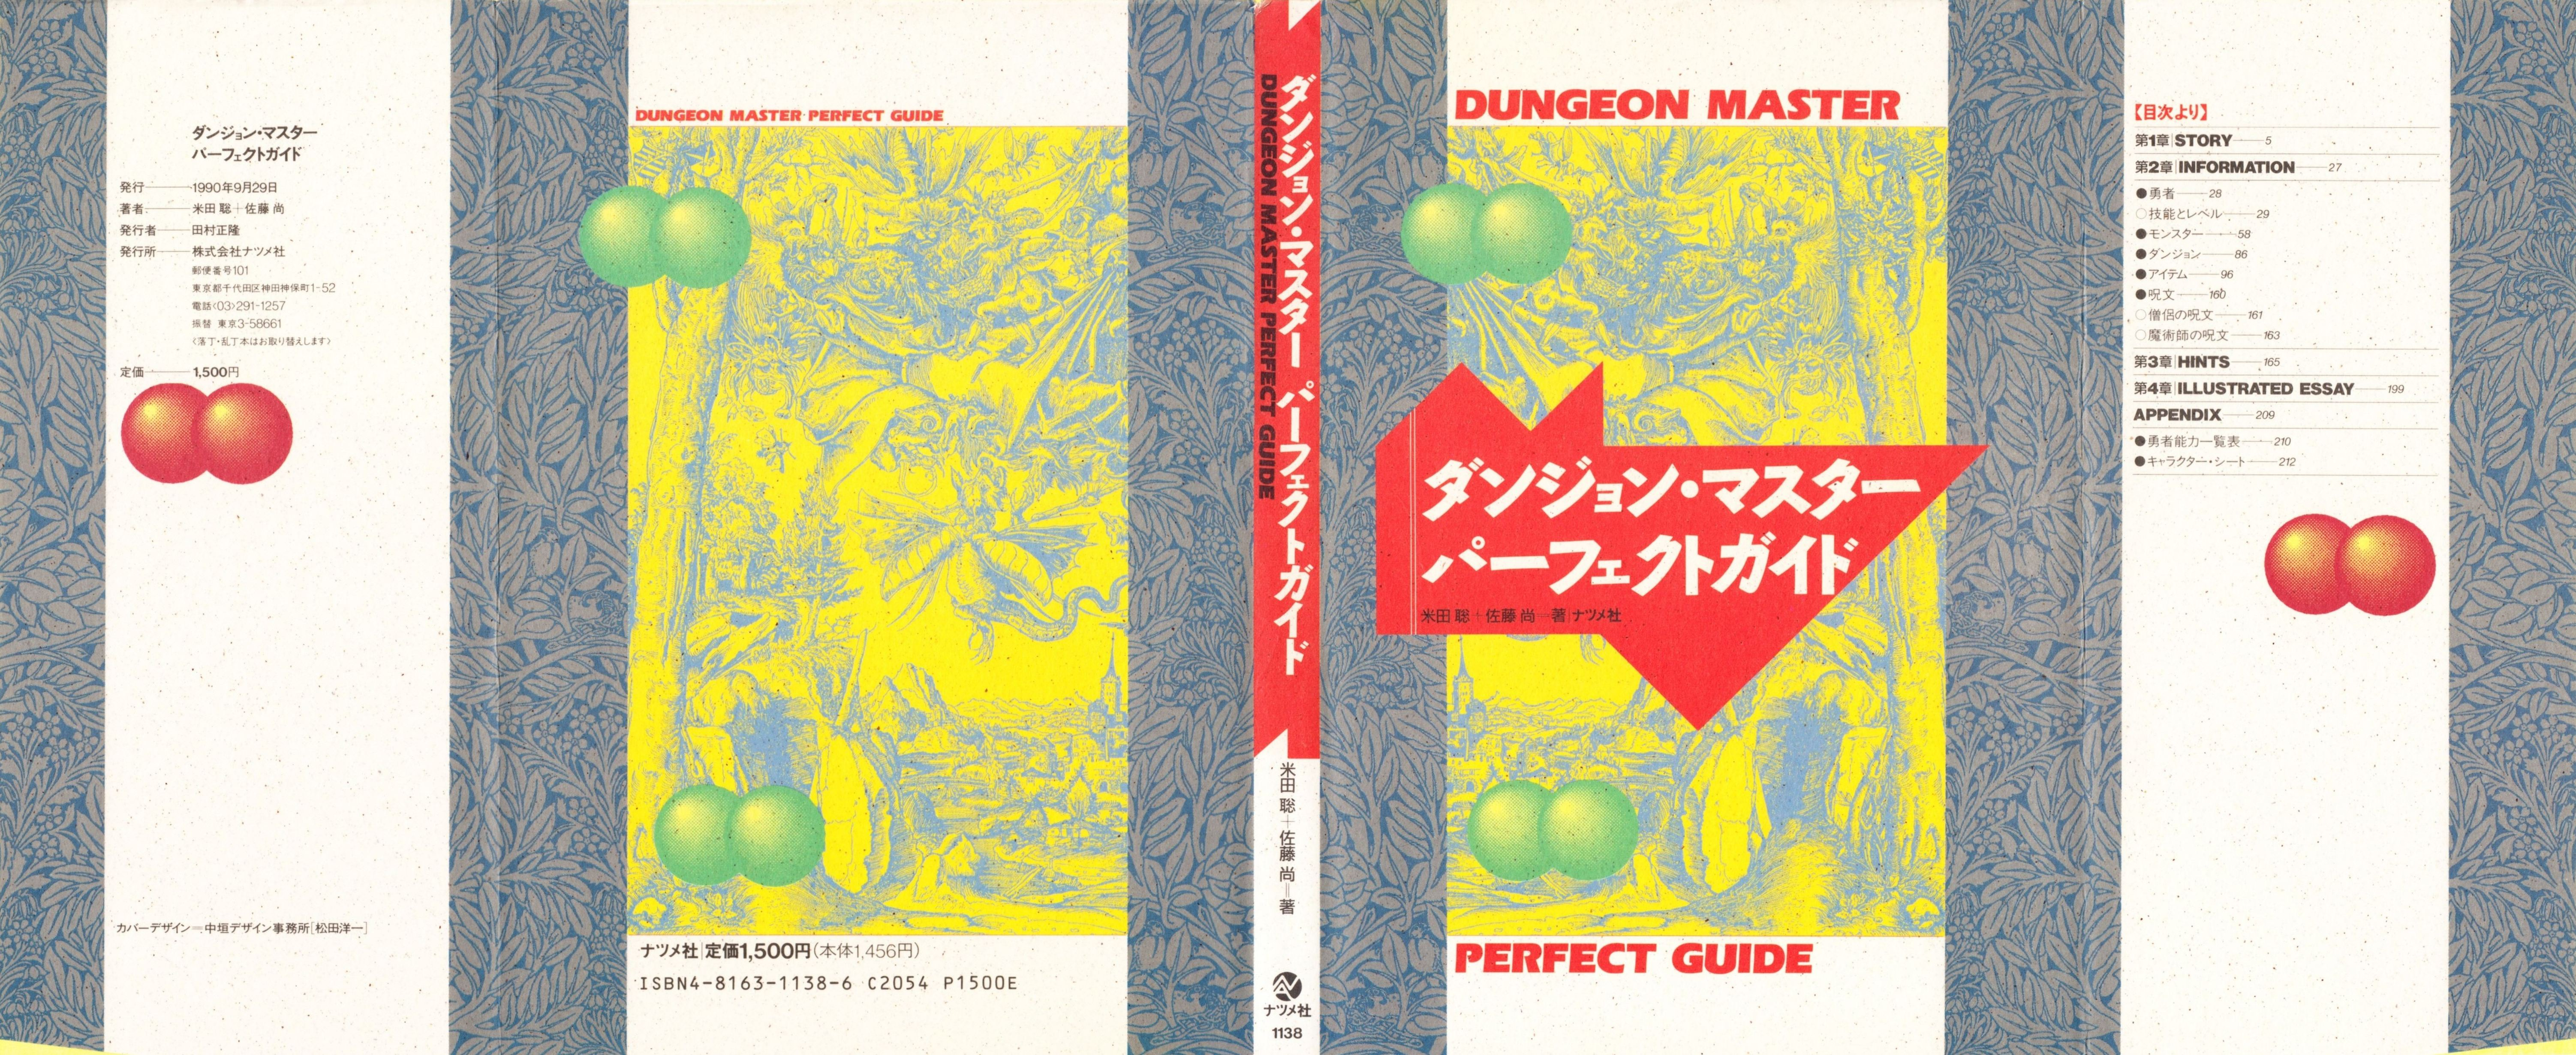 Hint Book - Dungeon Master Perfect Guide - JP - 1990-09-29 - Dust Jacket - Front - Scan